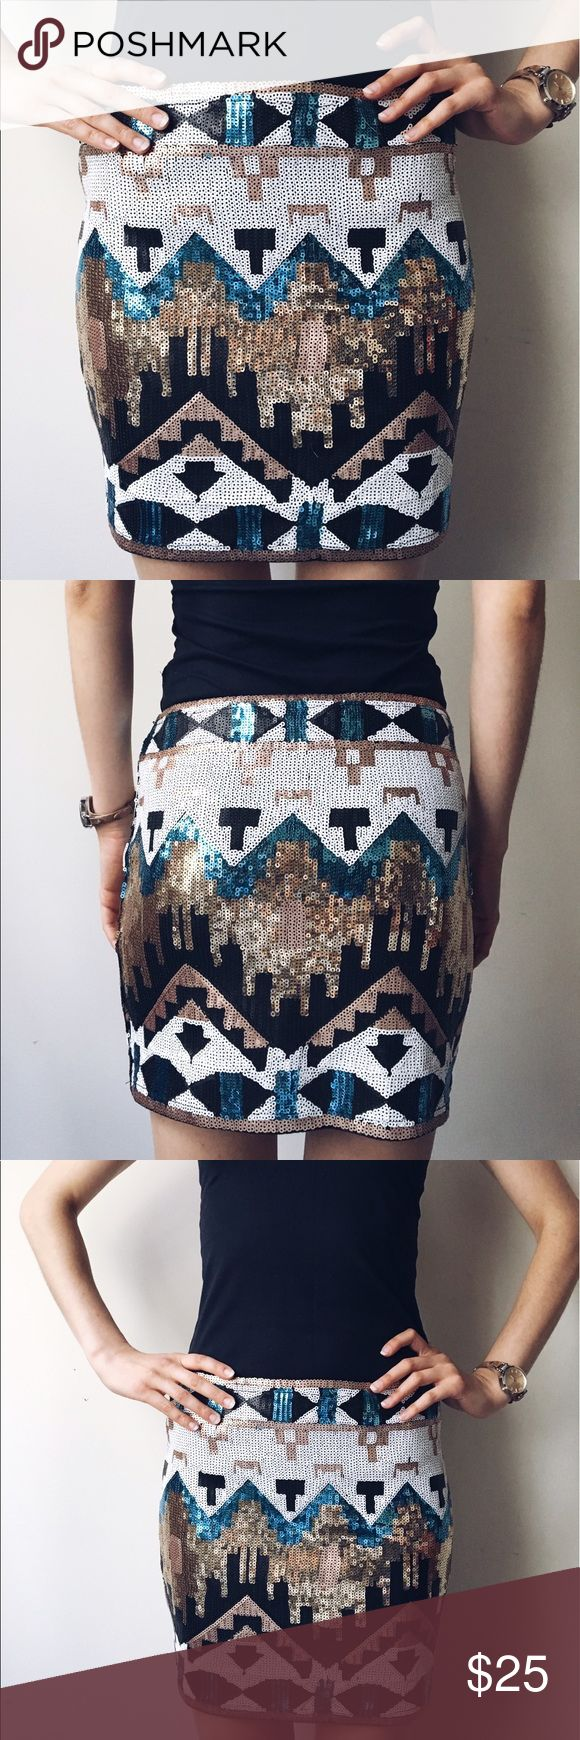 Colorful Native American inspired sequin skirt Native American inspired colorful sequin skirt. Size M but fits great as S. Worn only once. Orange Caramel Skirts Mini